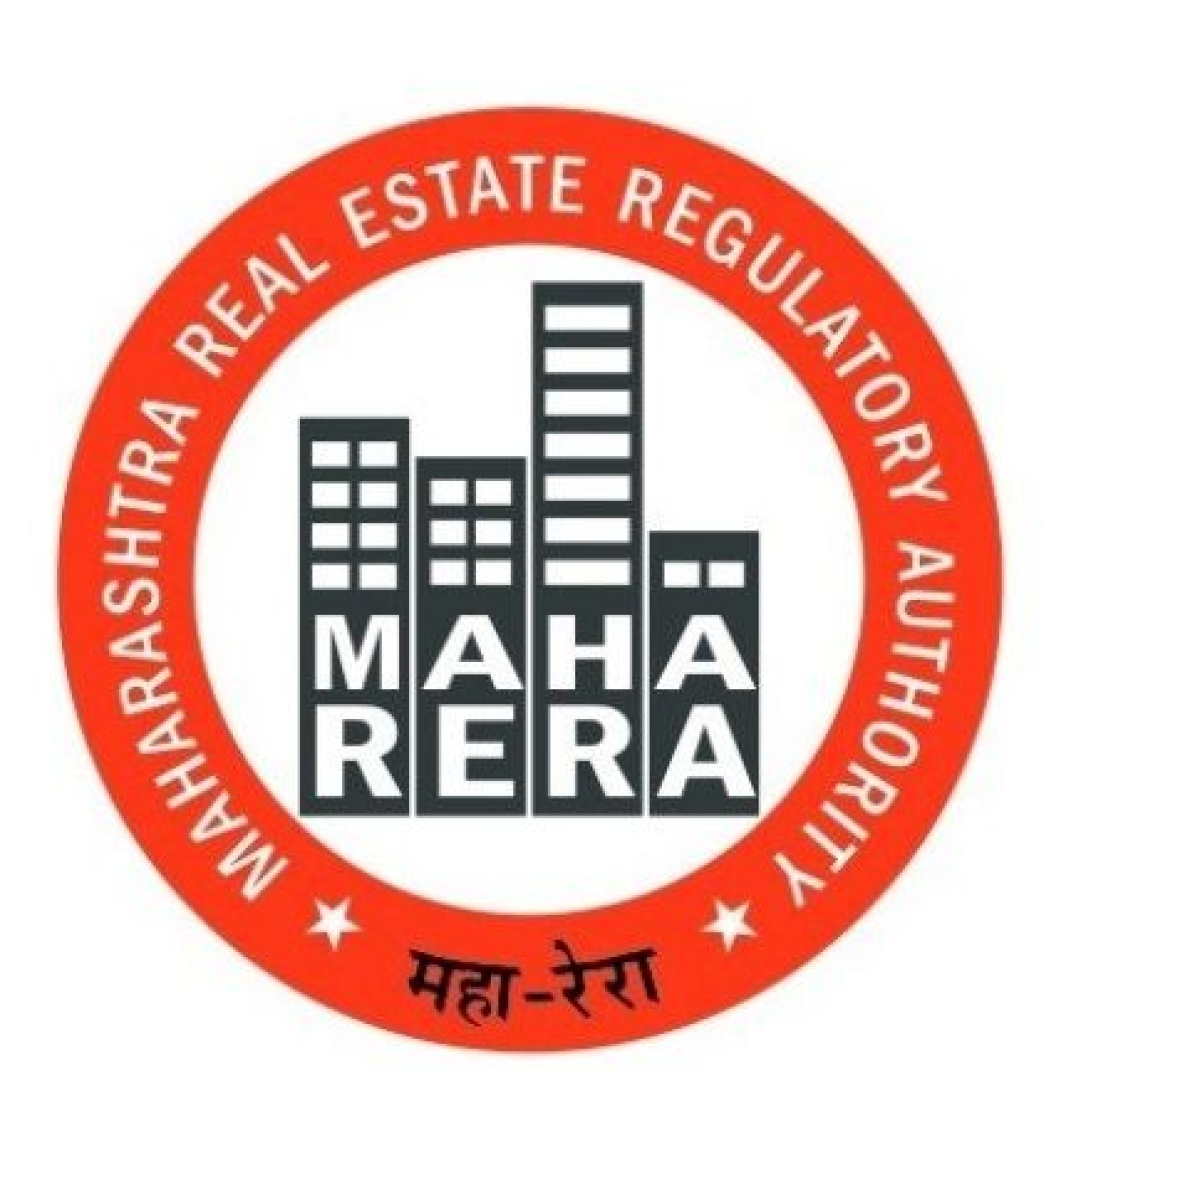 MahaRERA relief to stressed homebuyers, after 2 yrs